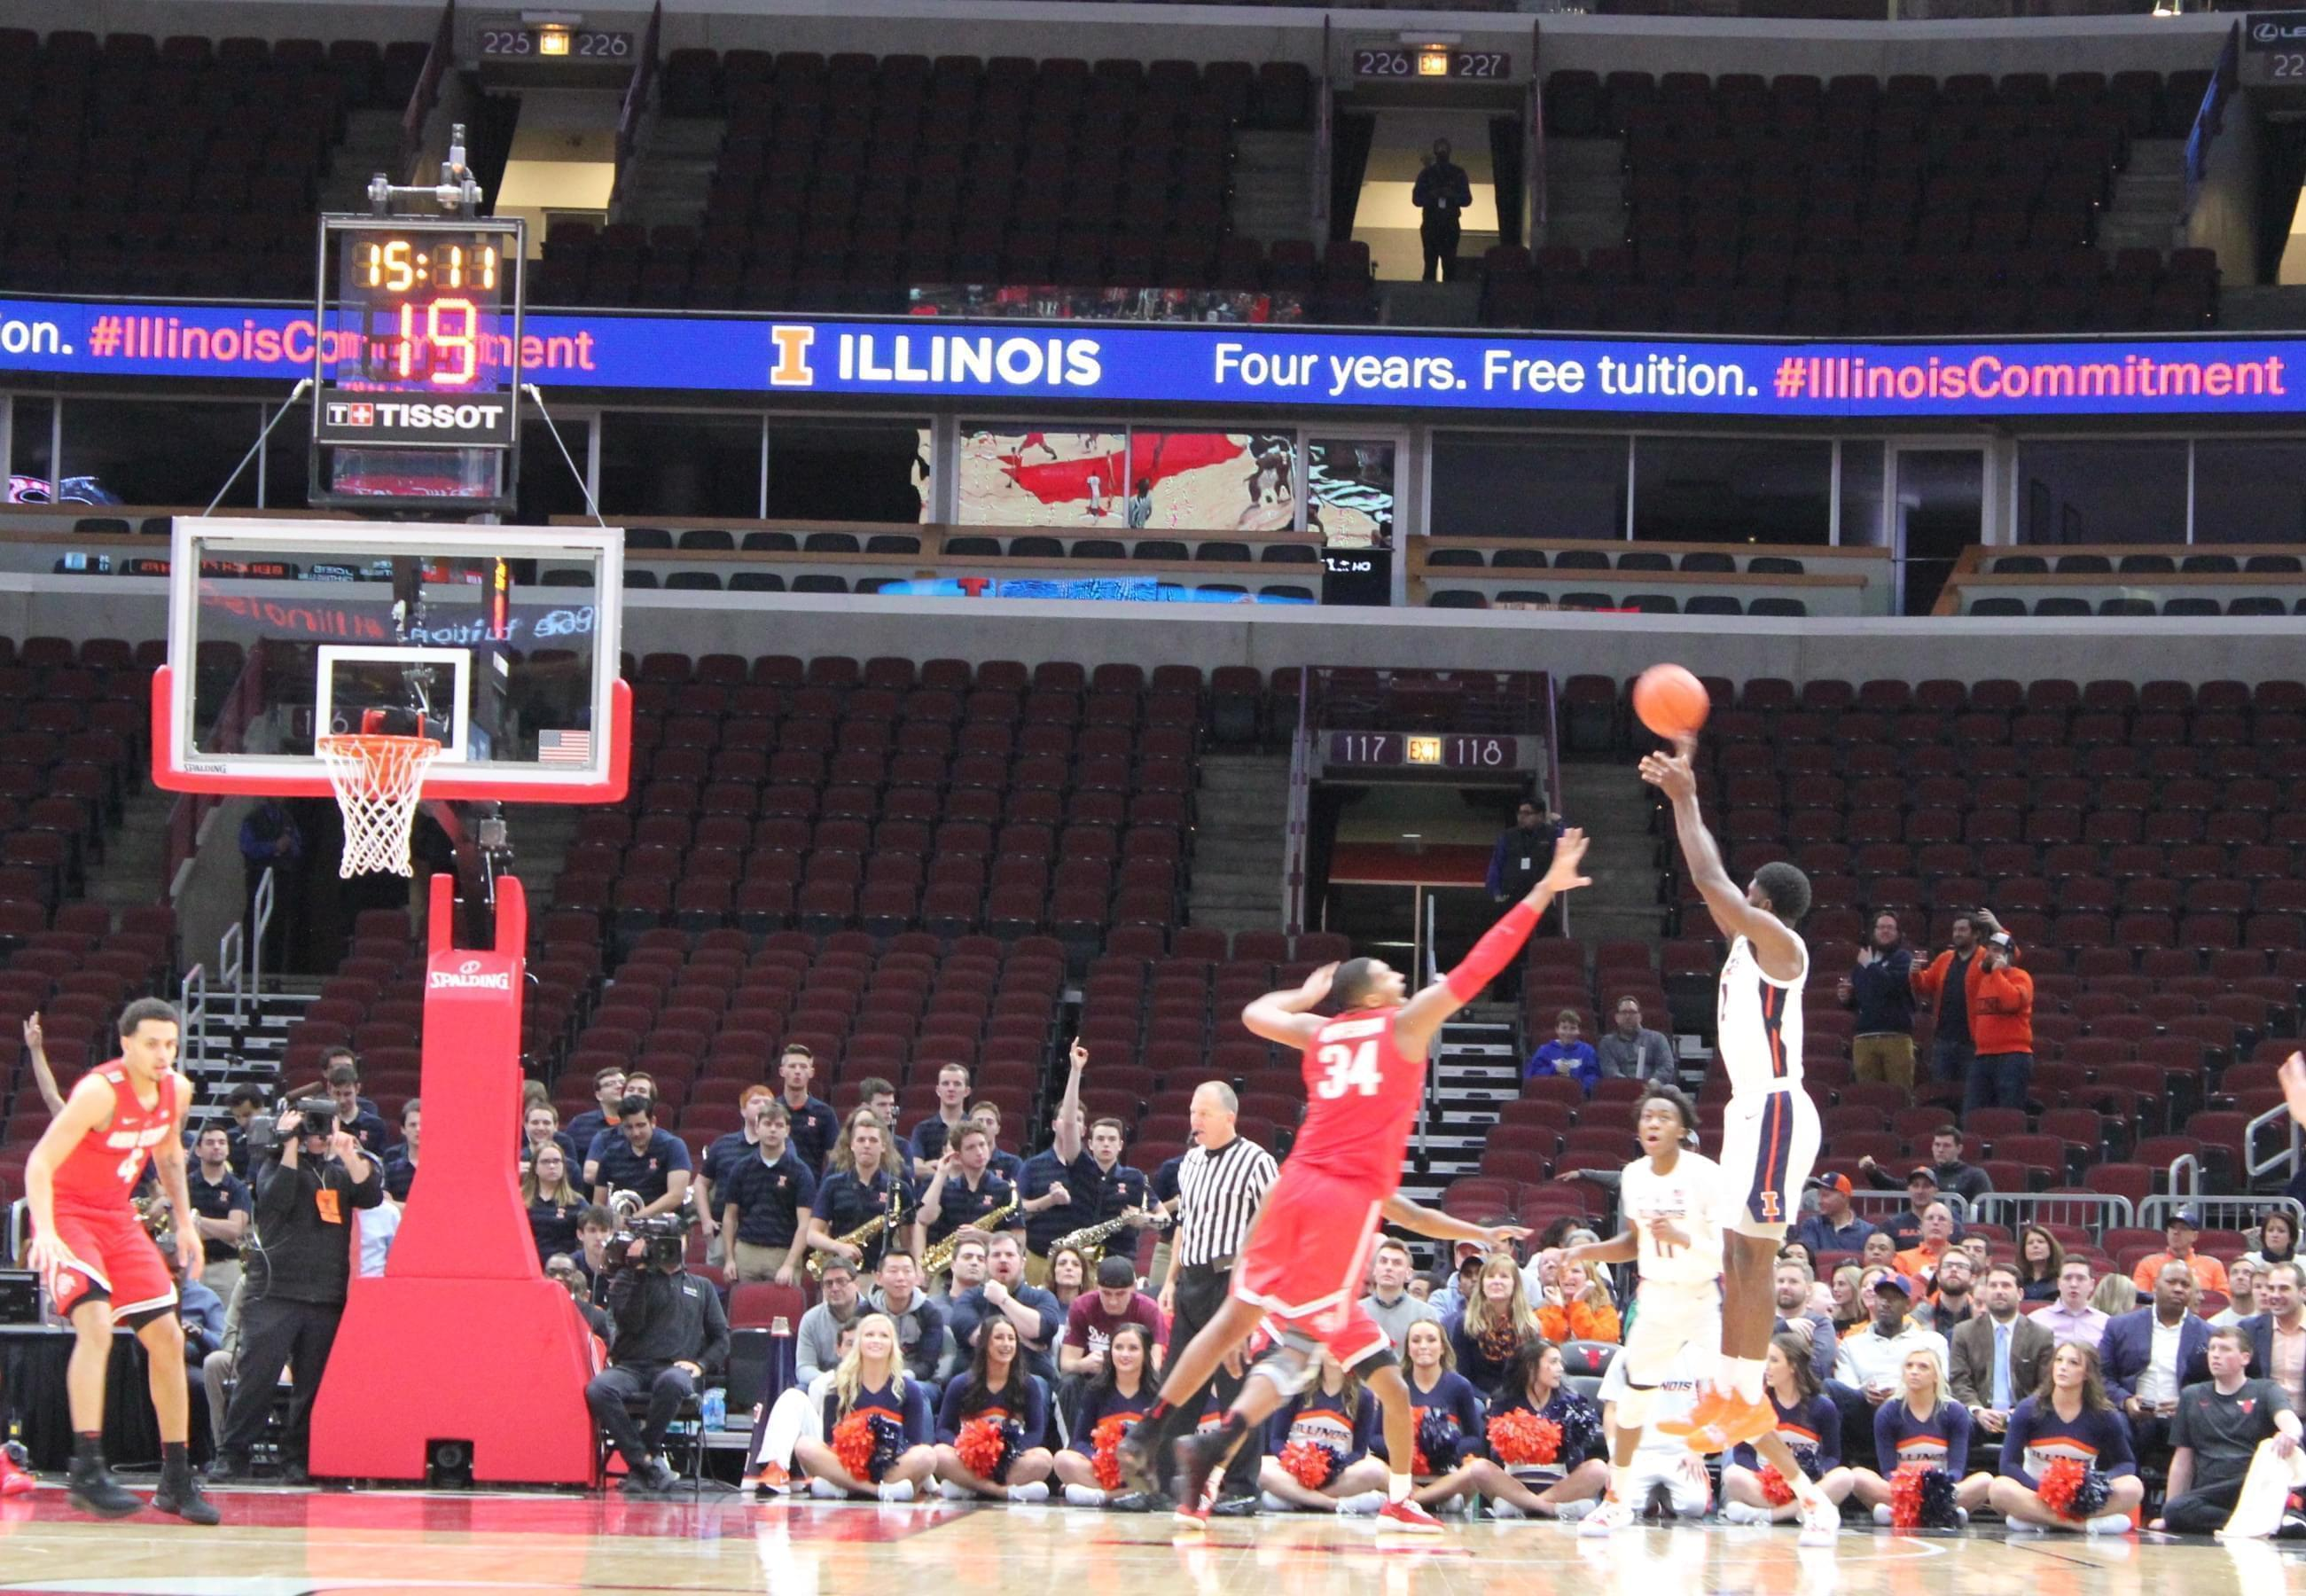 Kipper Nichols connects on a three-point attempt in front of a largely empty United Center, Wednesday December 5 in Chicago.